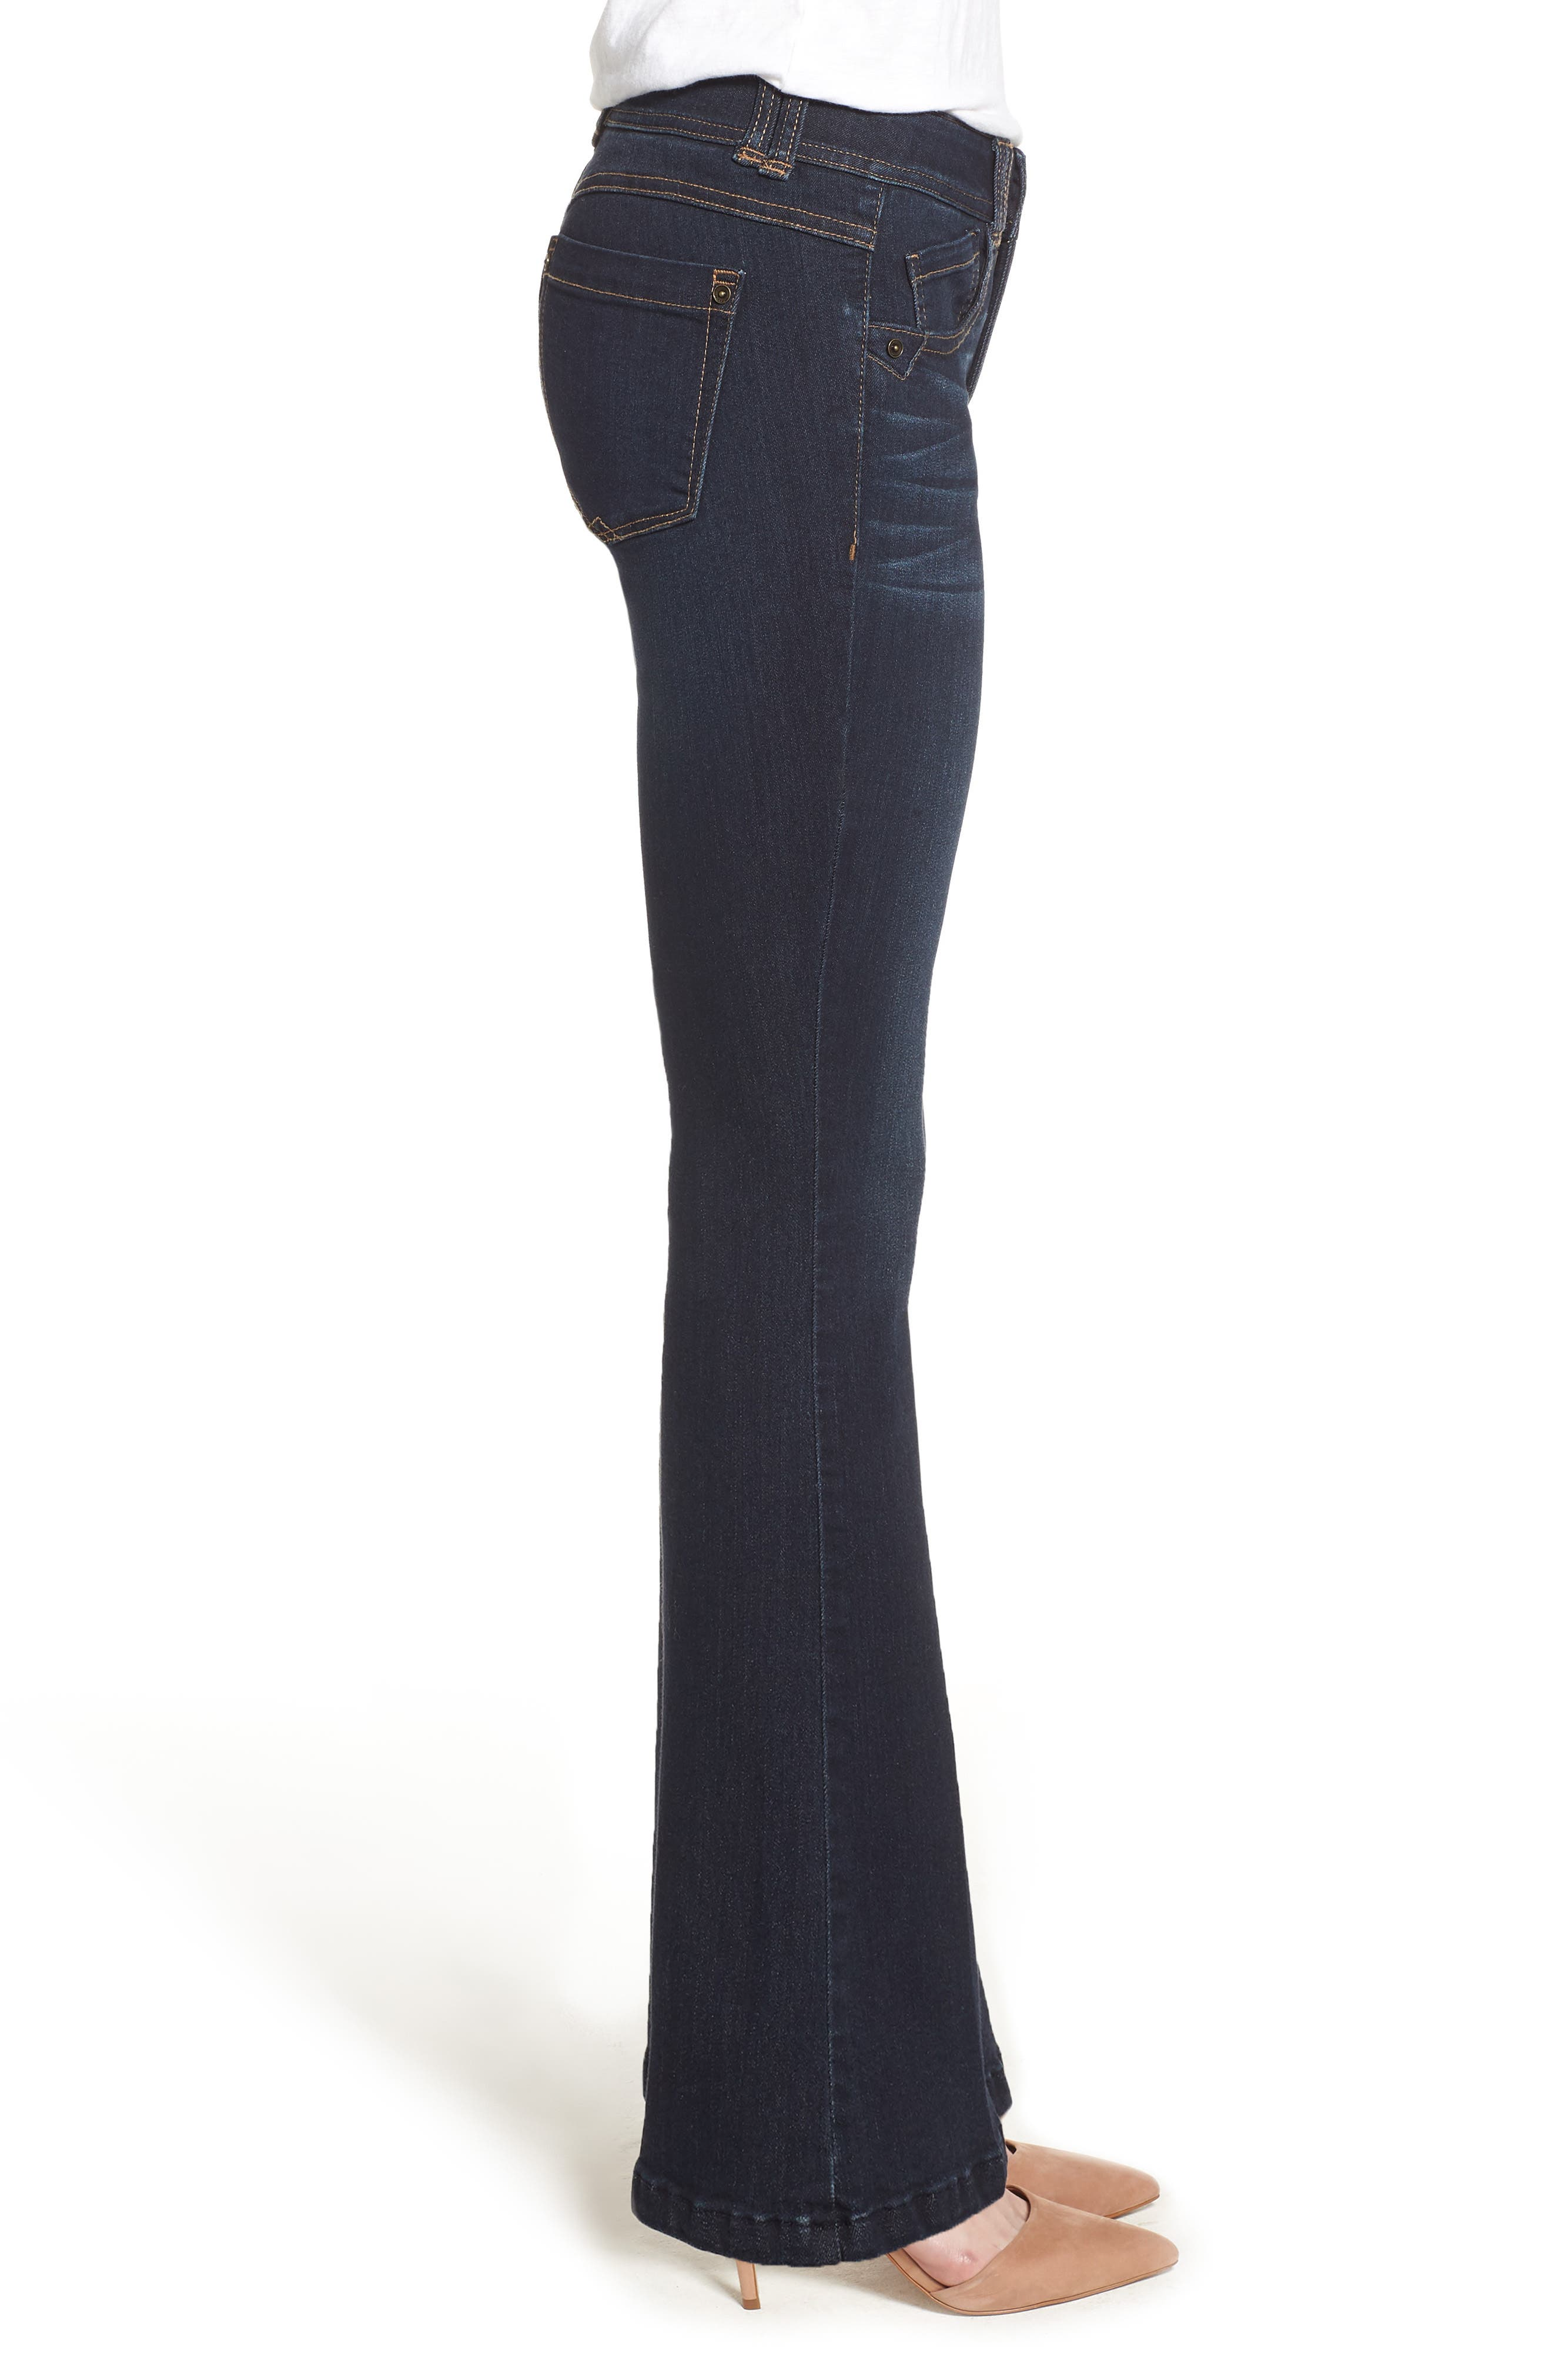 Ab-solution Itty Bitty Bootcut Jeans,                             Alternate thumbnail 3, color,                             402